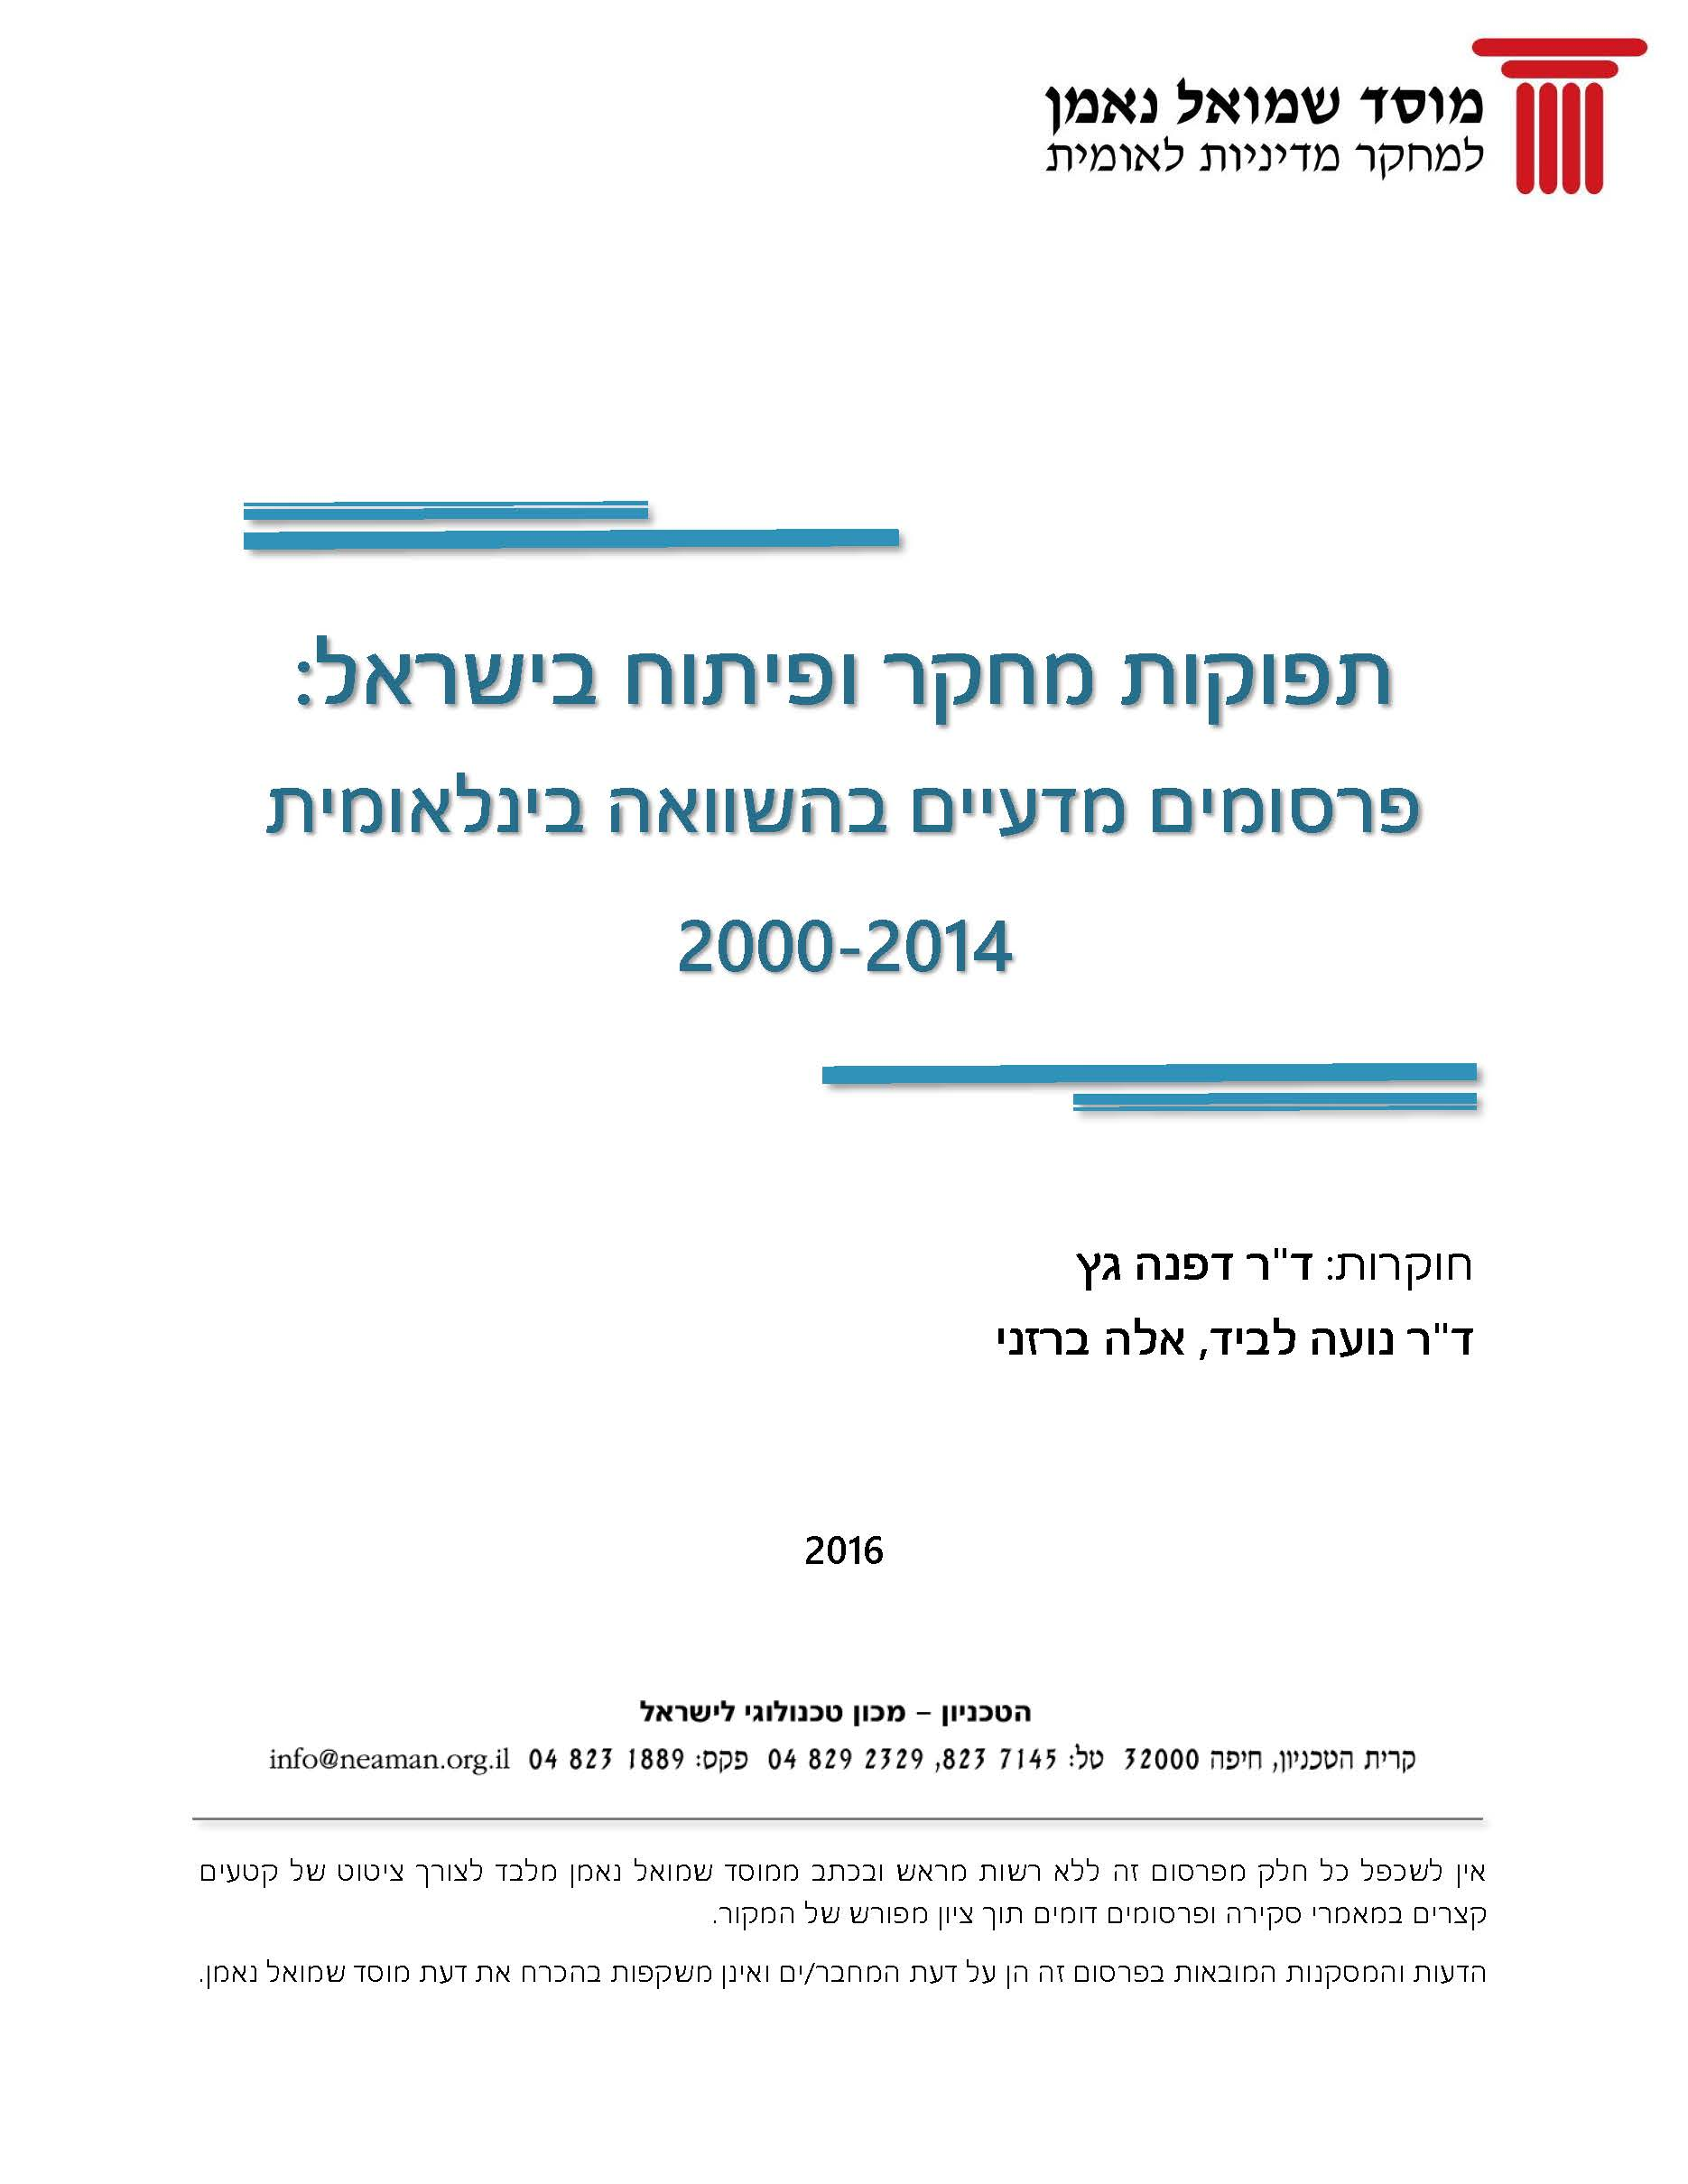 R&D Outputs in Israel: International Comparison of Scientific Publications, 2000-2014